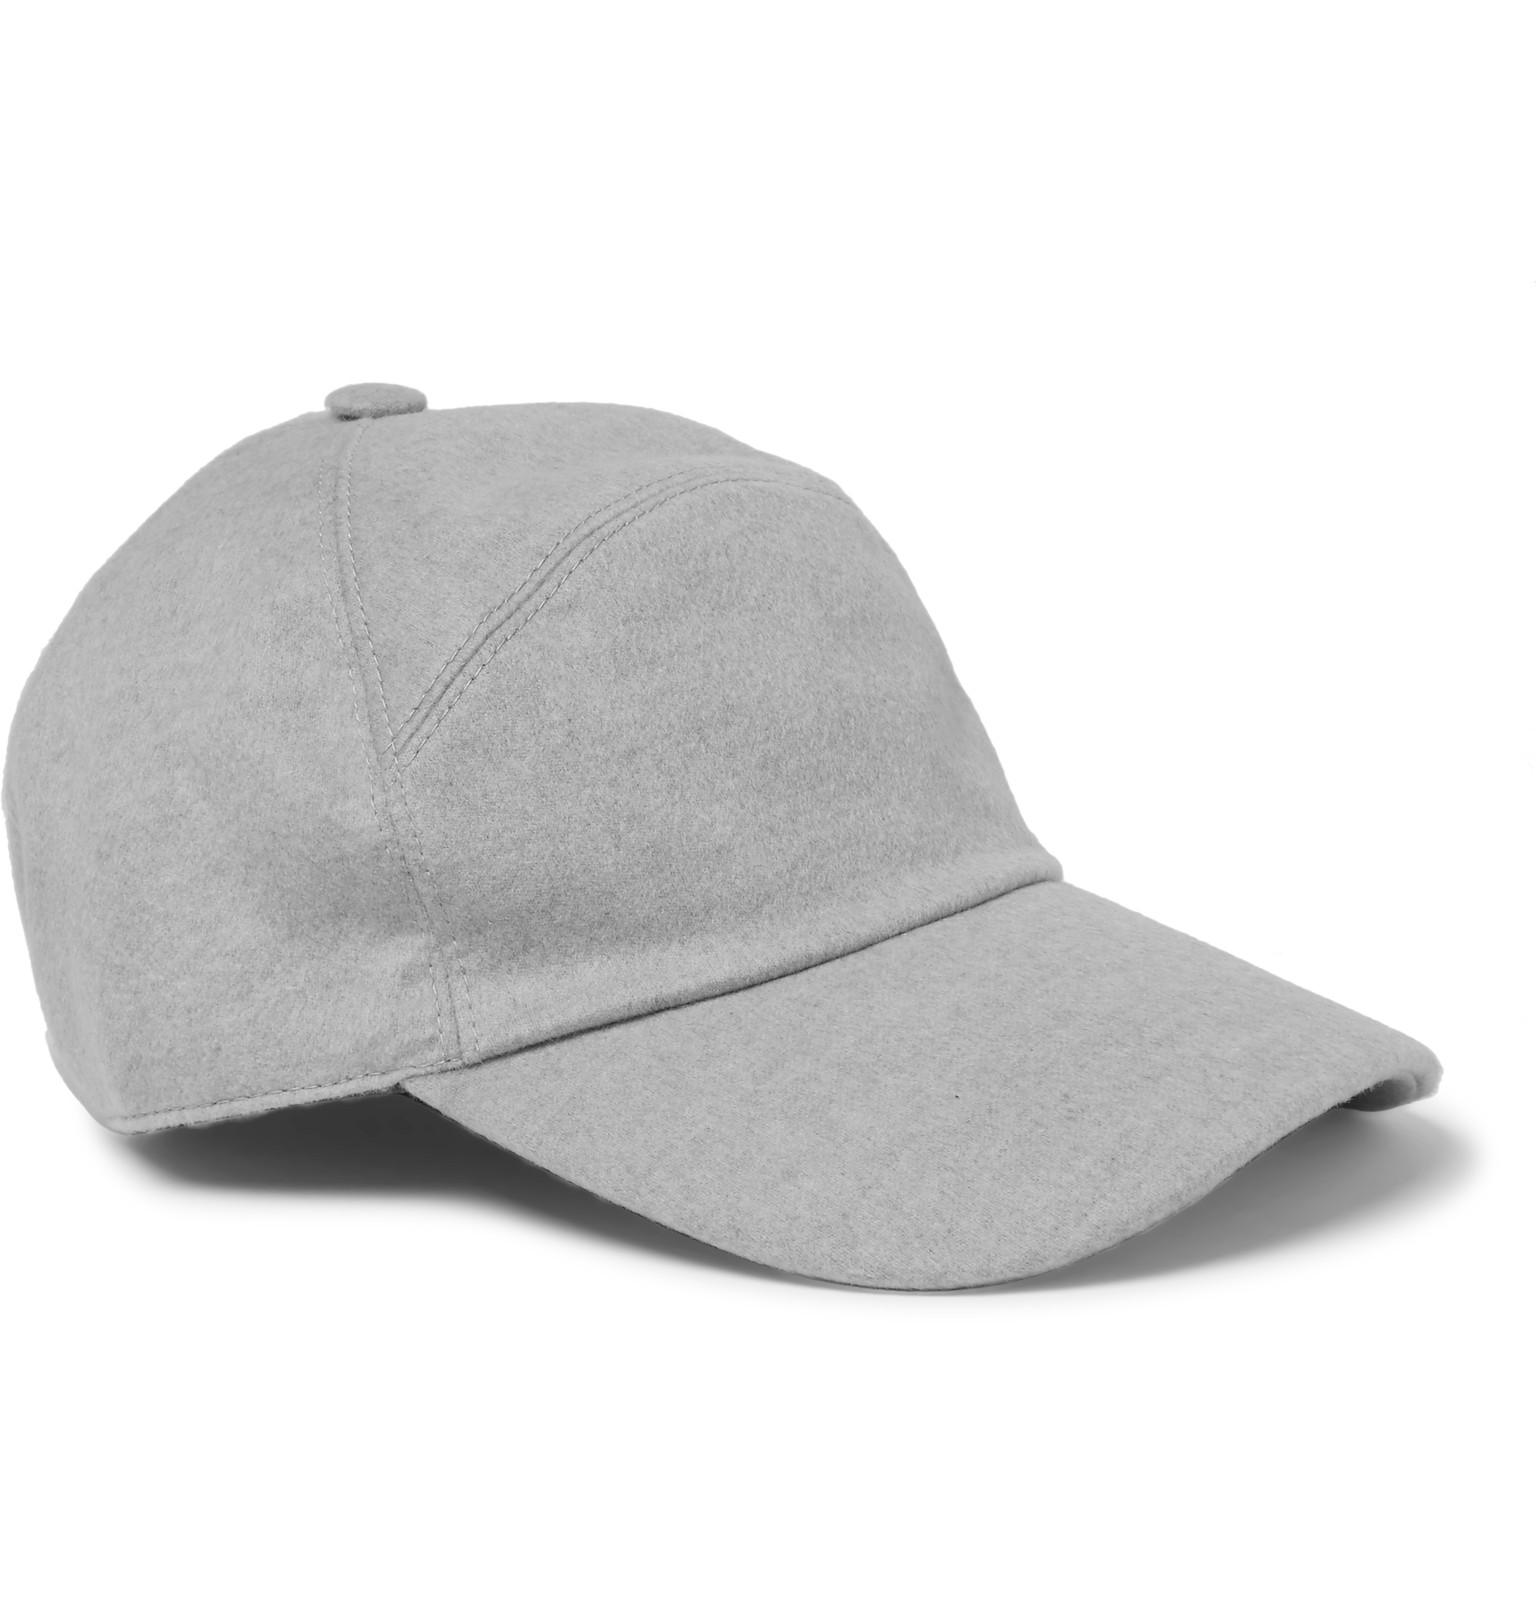 c7d03c2b24a Lyst - Loro Piana Storm System® Baby Cashmere Baseball Cap in Gray ...